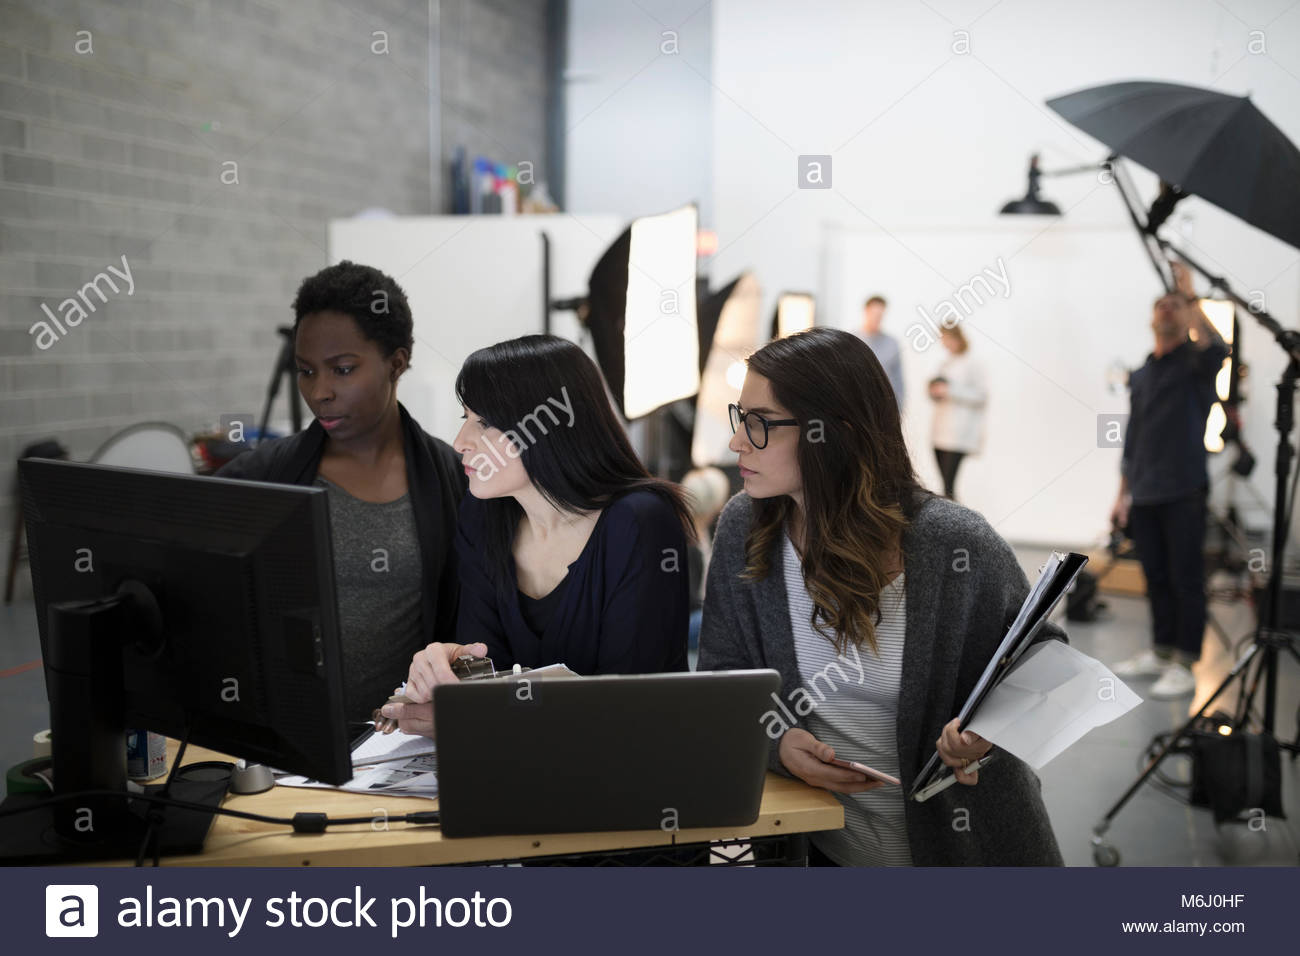 Female production assistants using computer and laptop at photo shoot in studio Stock Photo